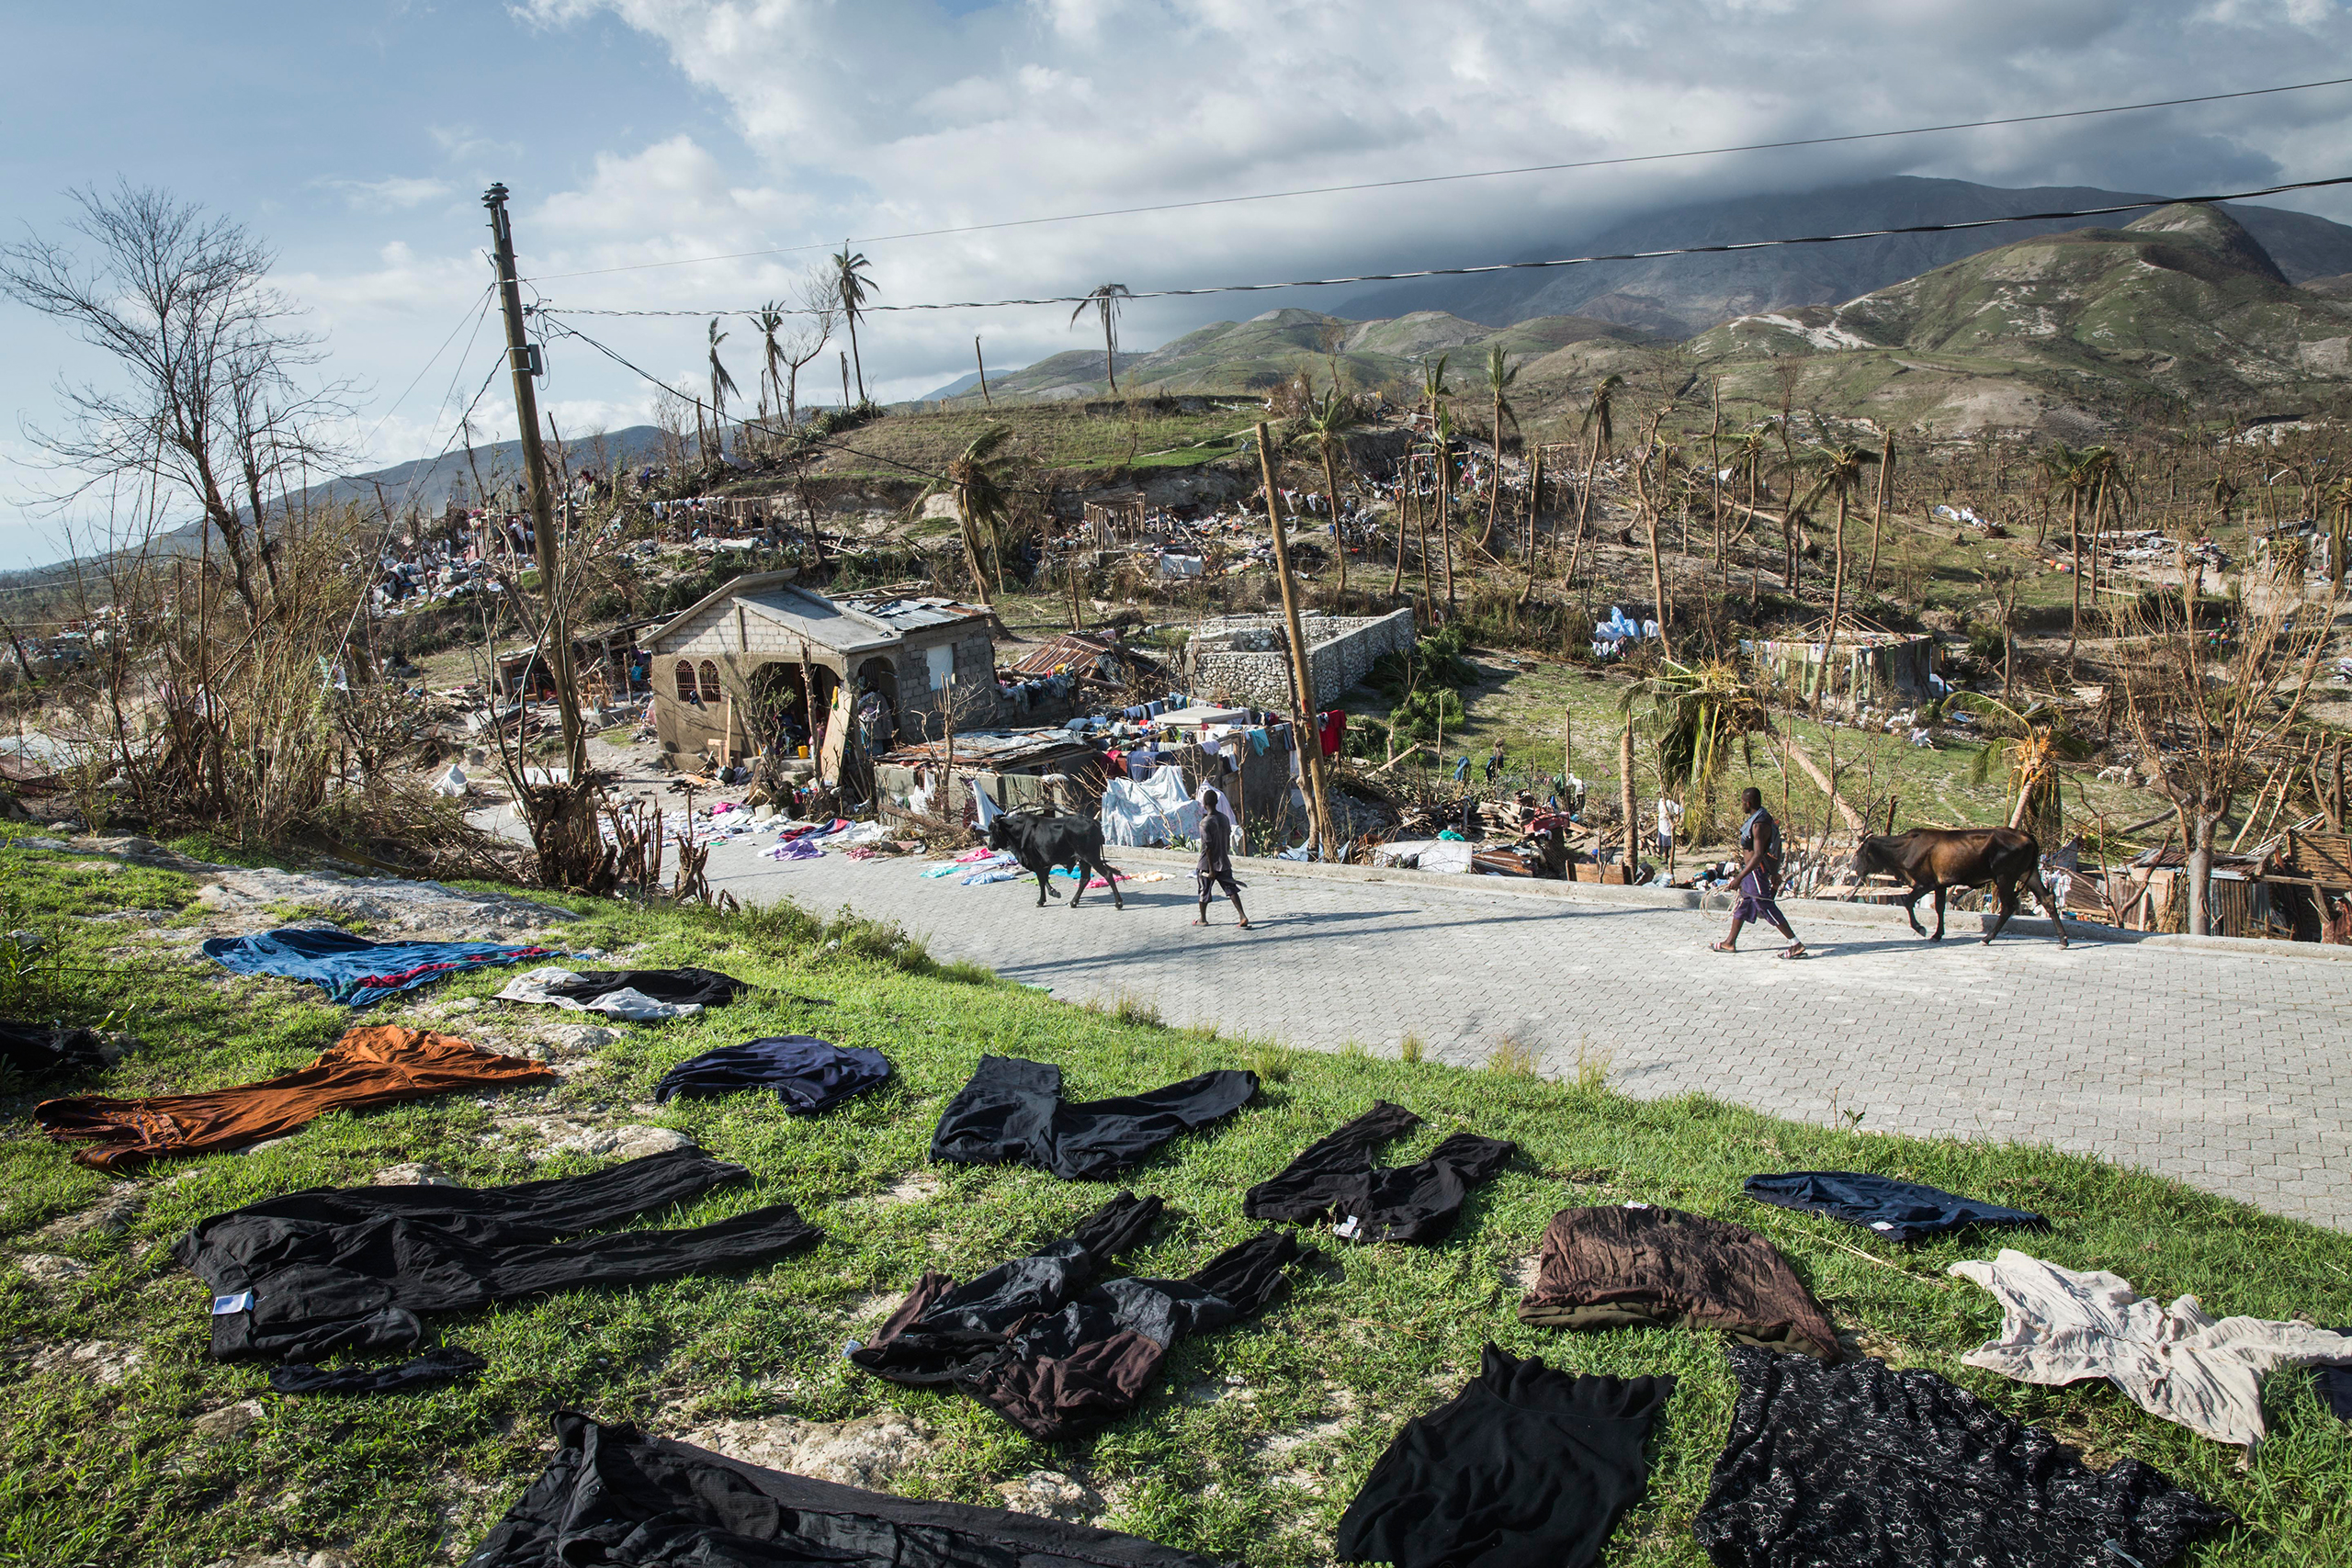 Clothes are dried on the ground in Roche-a-Bateau, southwestern Haiti, on Oct. 8, 2016.